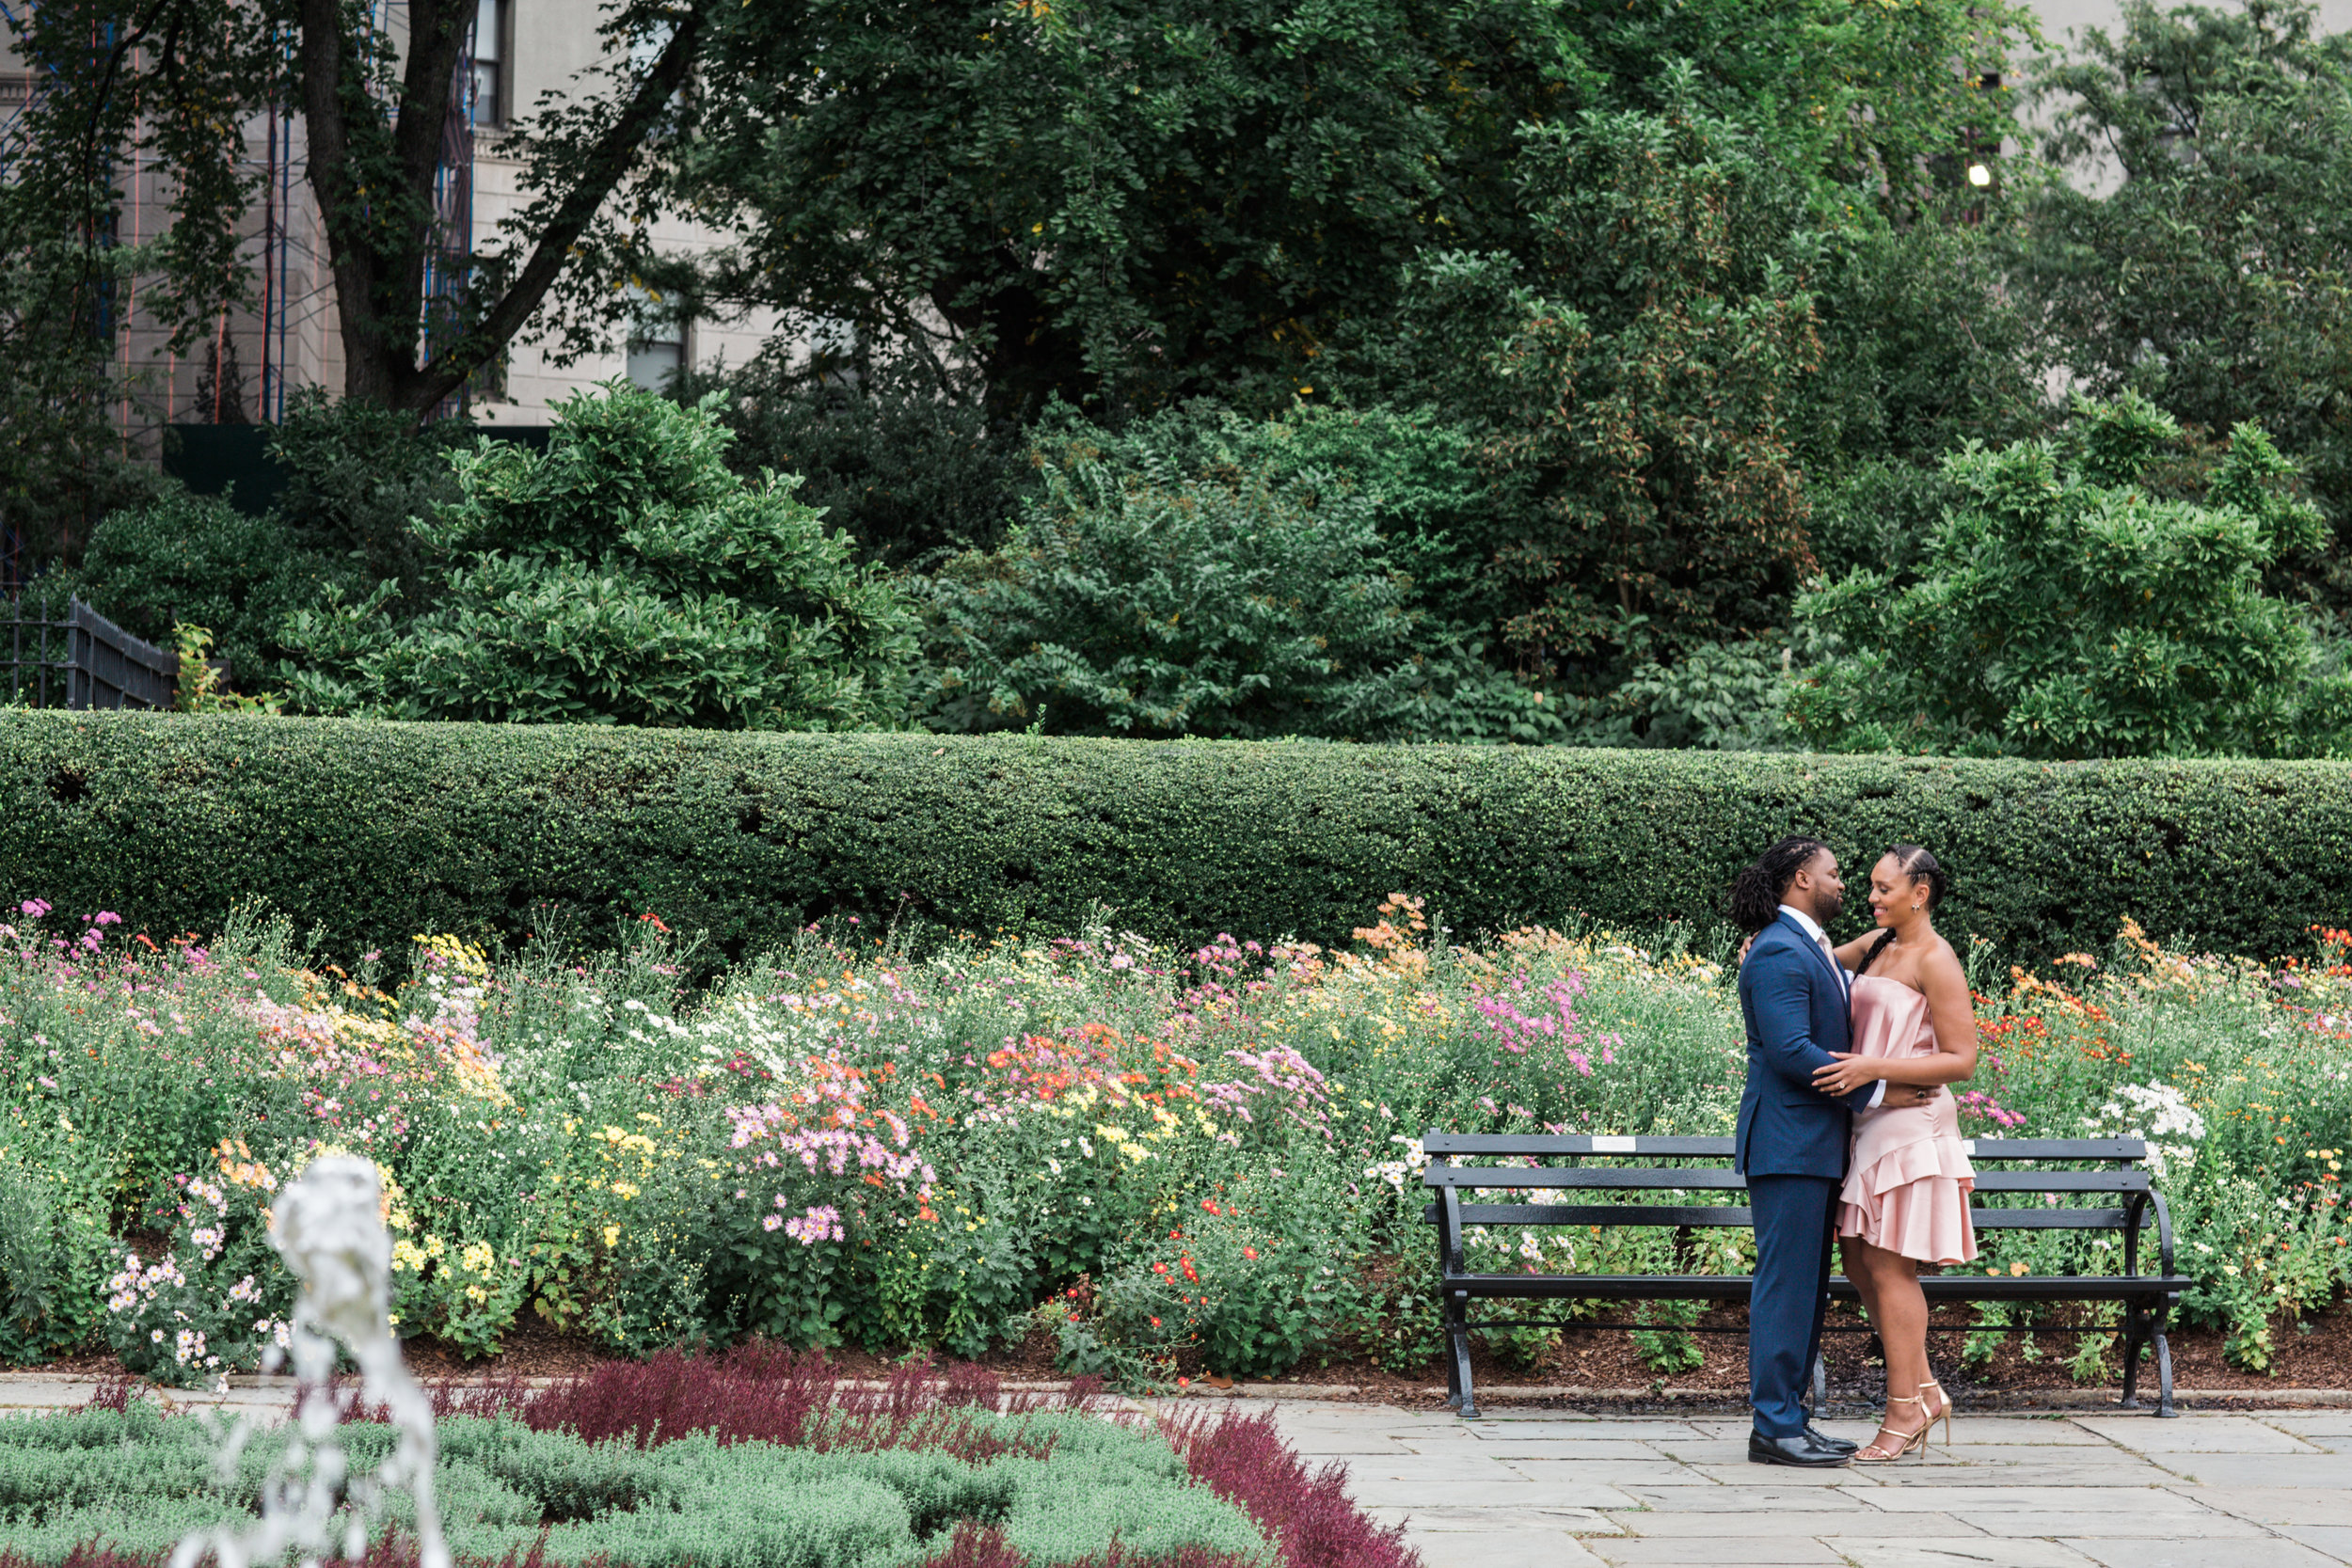 Megapixels Media Best Destination Engagement Photography in New York City Central Park Untemeyer Garden.jpg